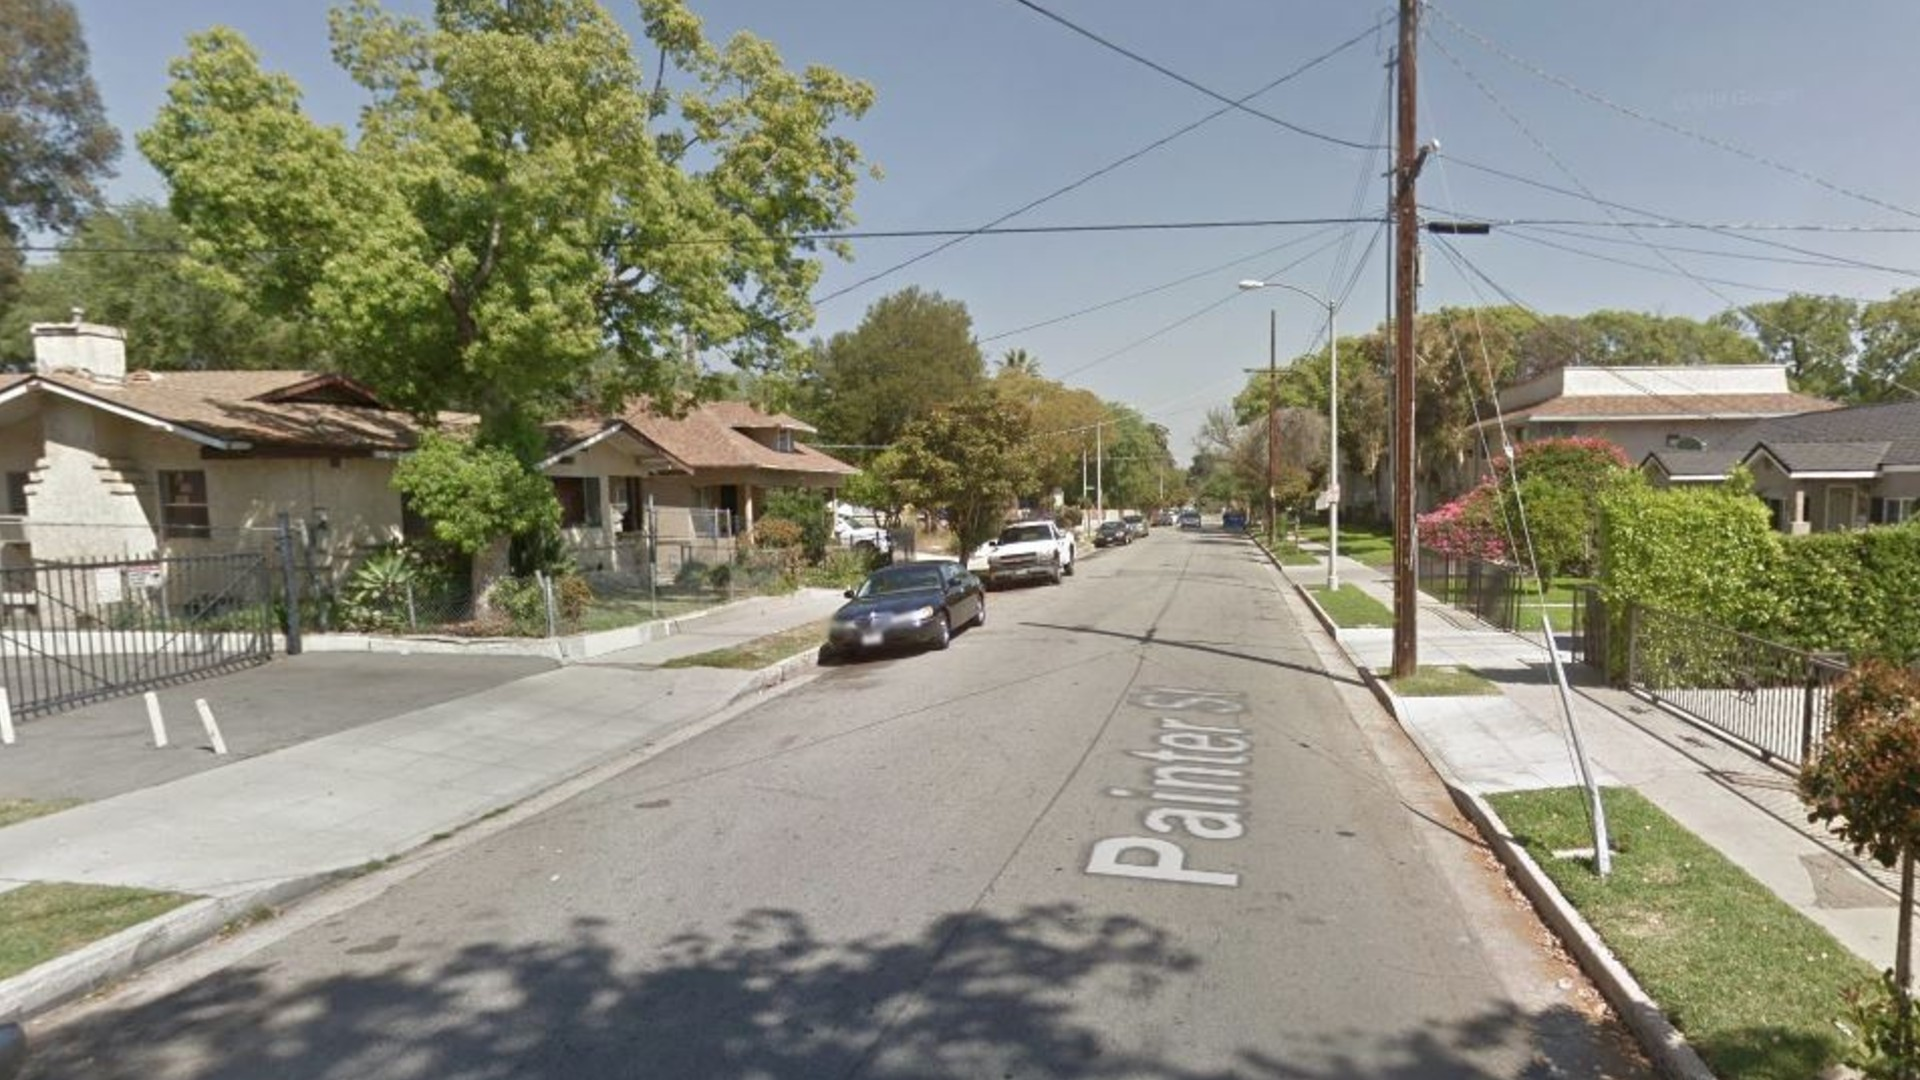 The 100 block of Painter Avenue in Pasadena, as pictured in a Google Street View image.